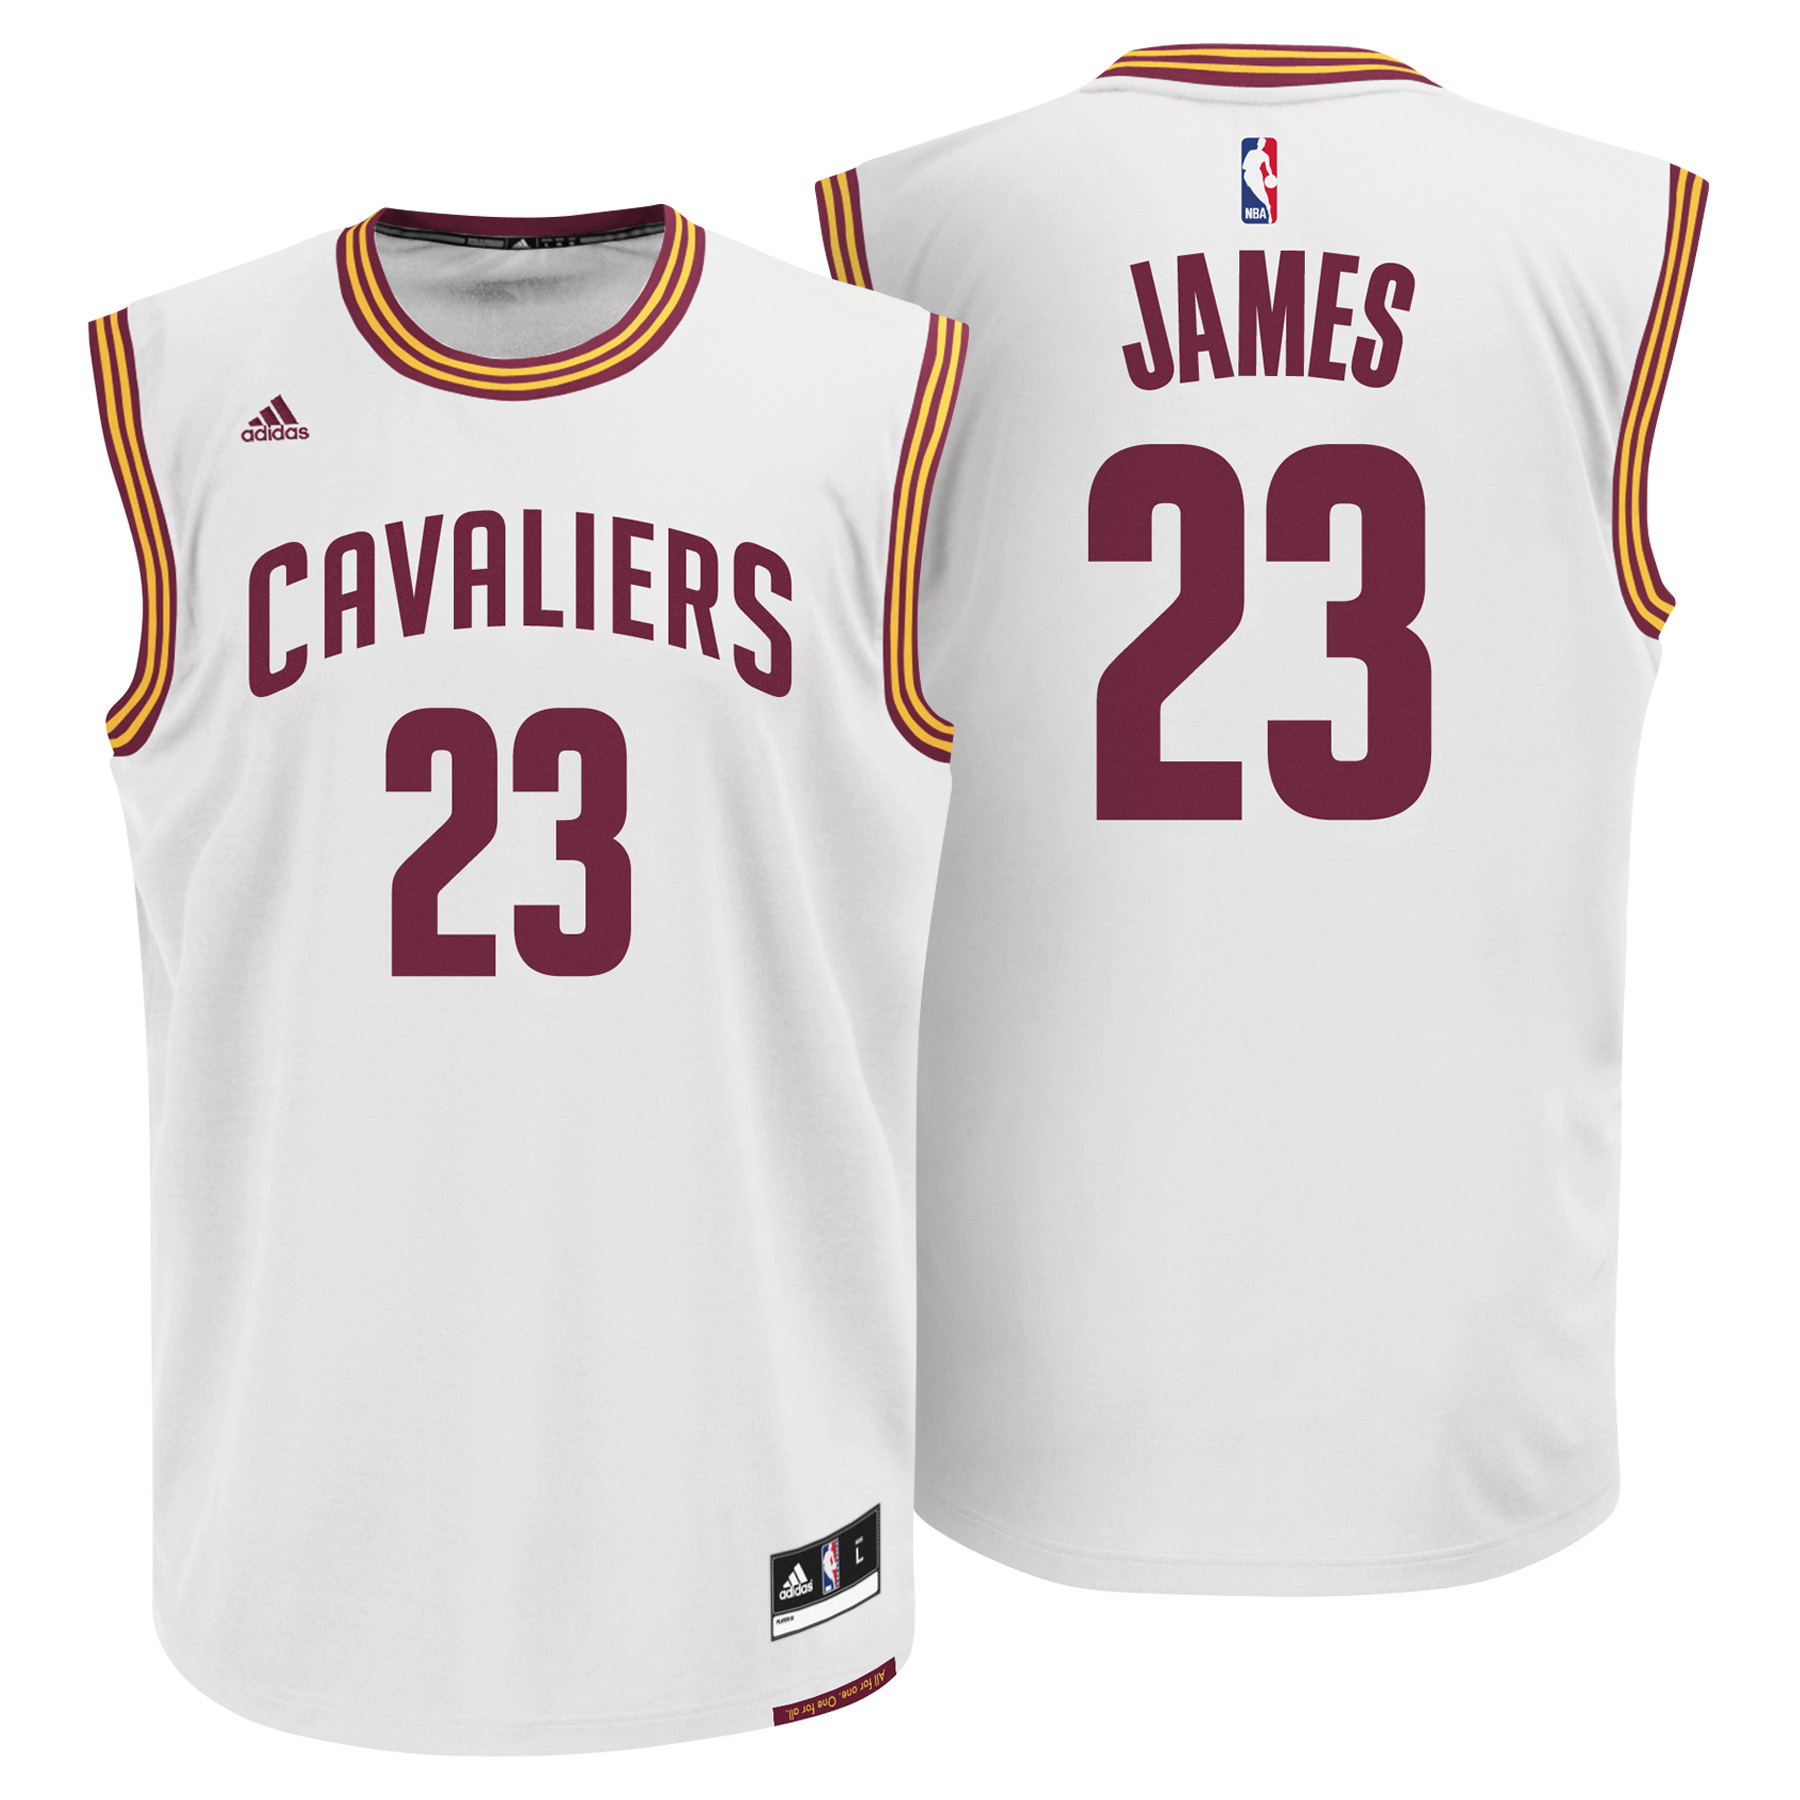 Cleveland Cavaliers Home Replica Jersey - Lebron James - Mens